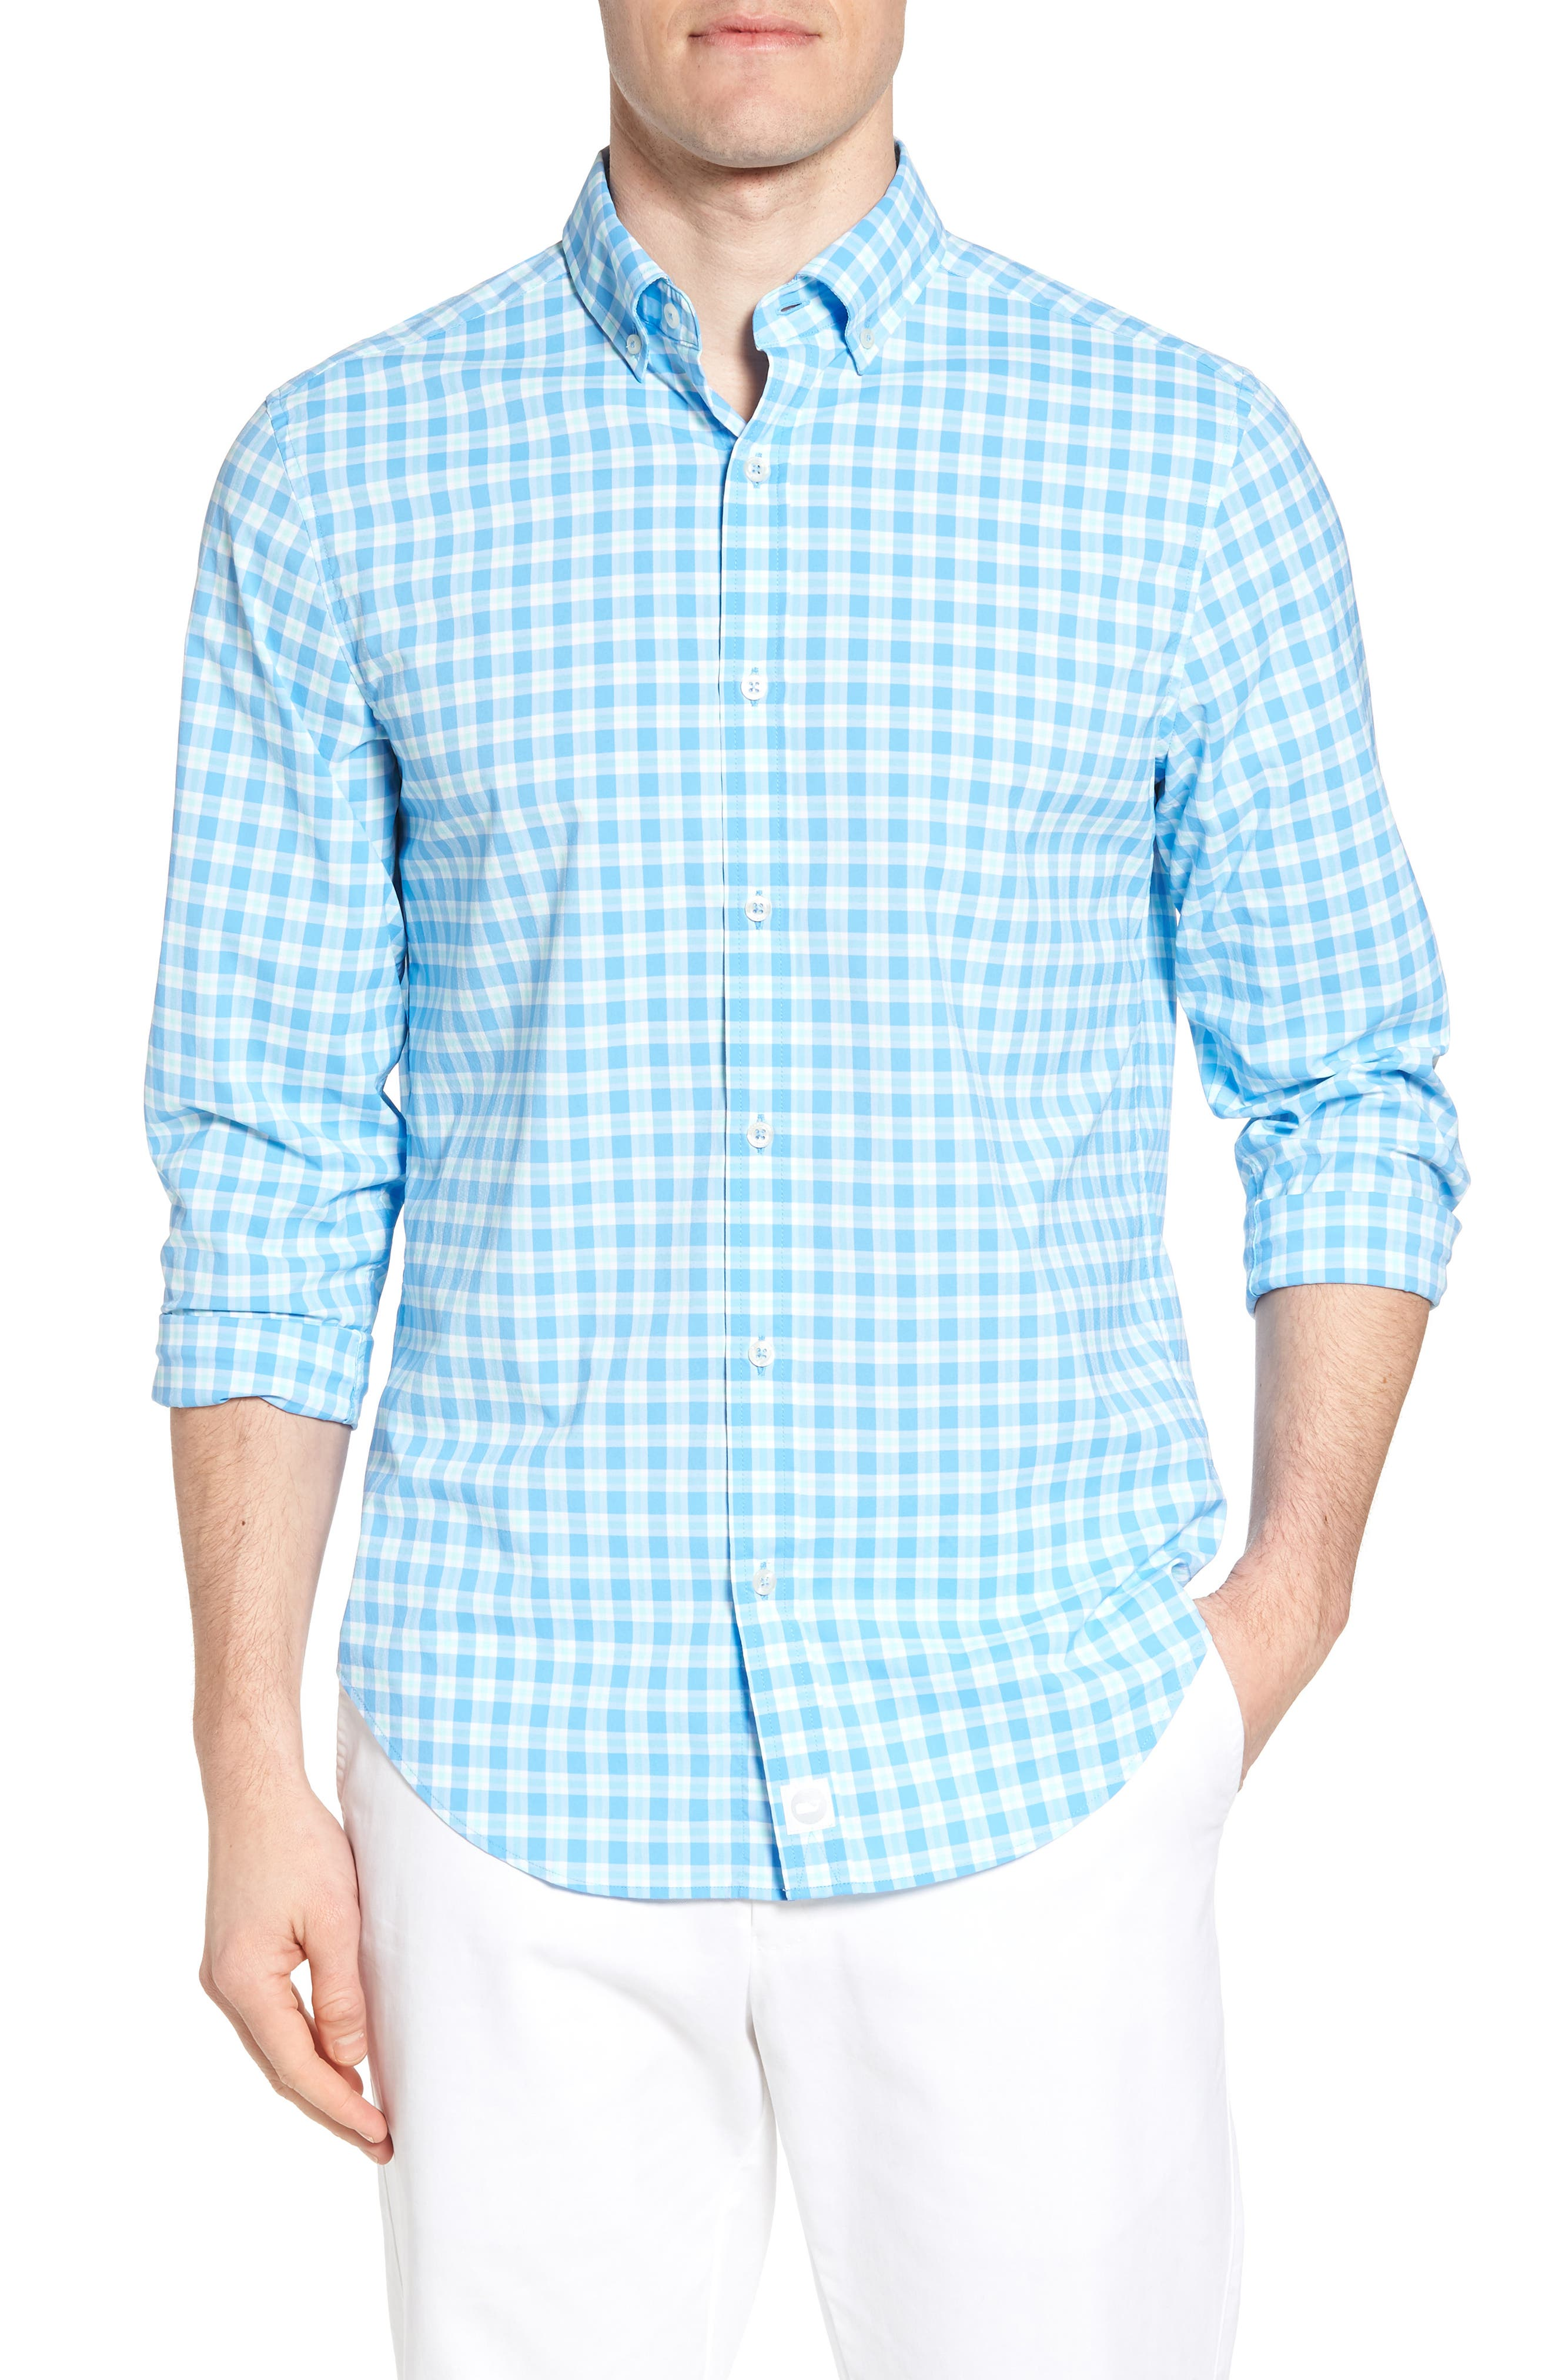 Ocean Beach Classic Fit Stretch Check Sport Shirt,                         Main,                         color, 484